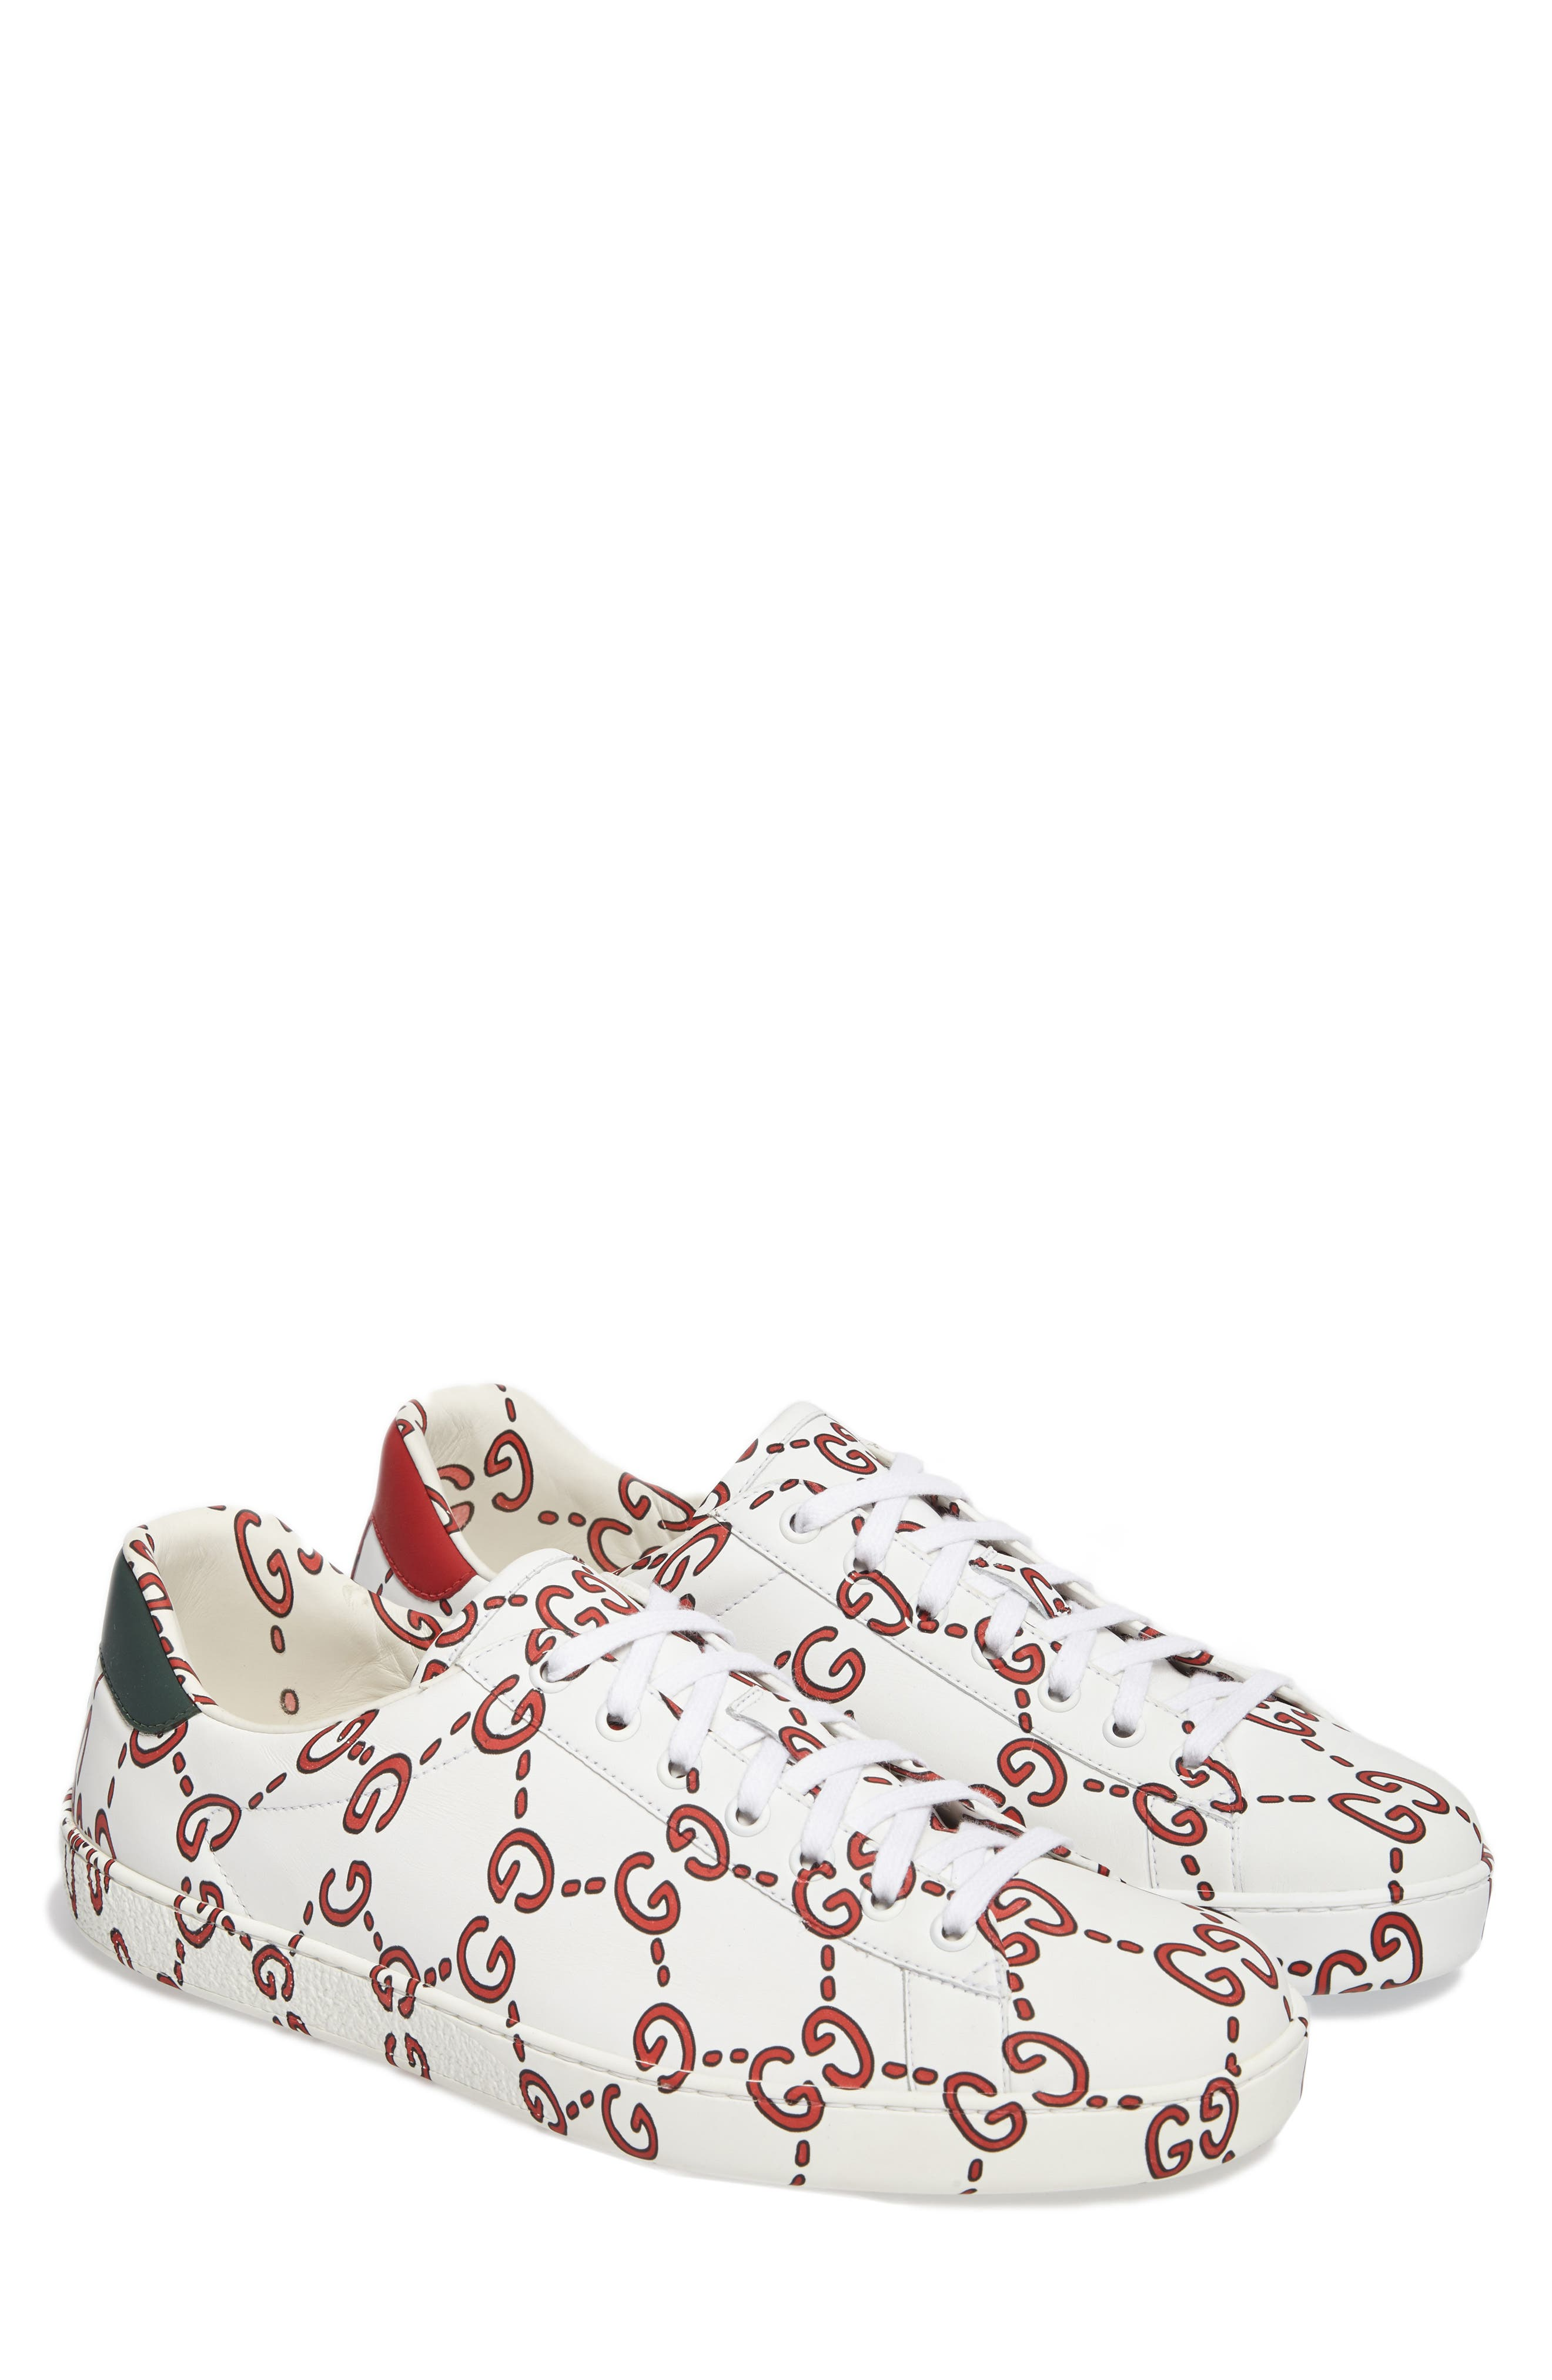 New Ace Guccighost Sneaker,                             Main thumbnail 1, color,                             White